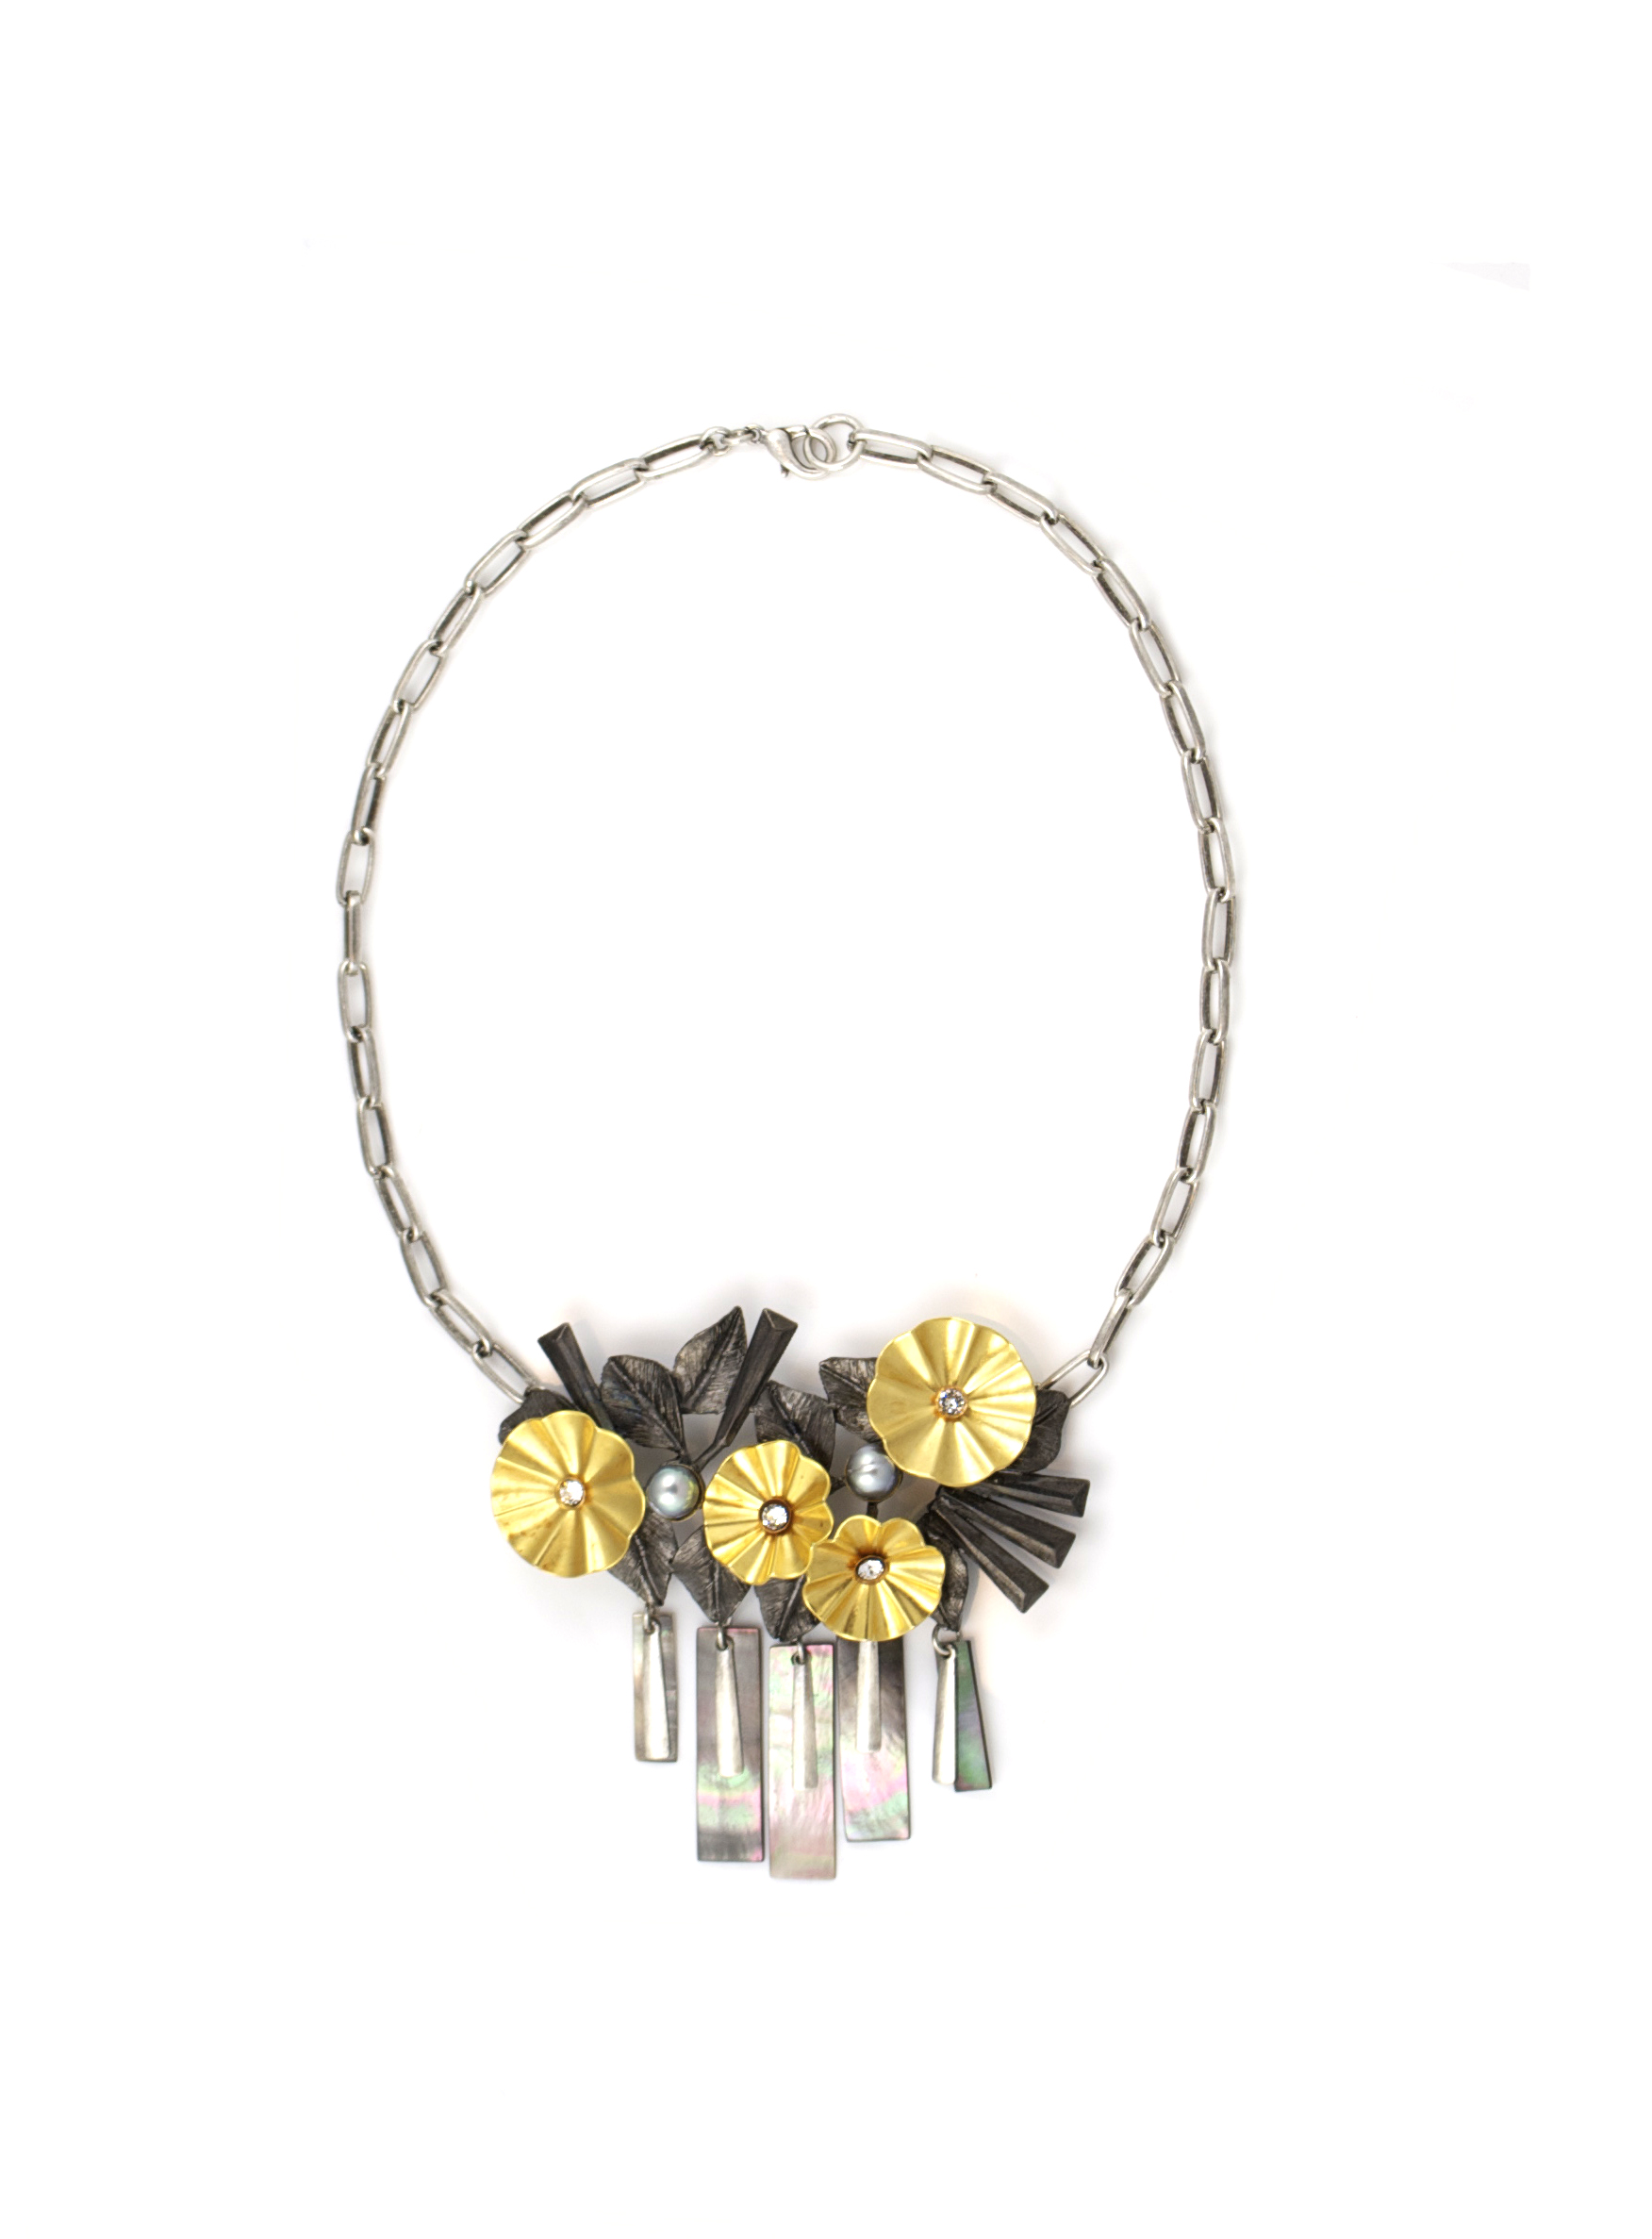 Flower Cloud necklace,  available at Gerard Yosca .